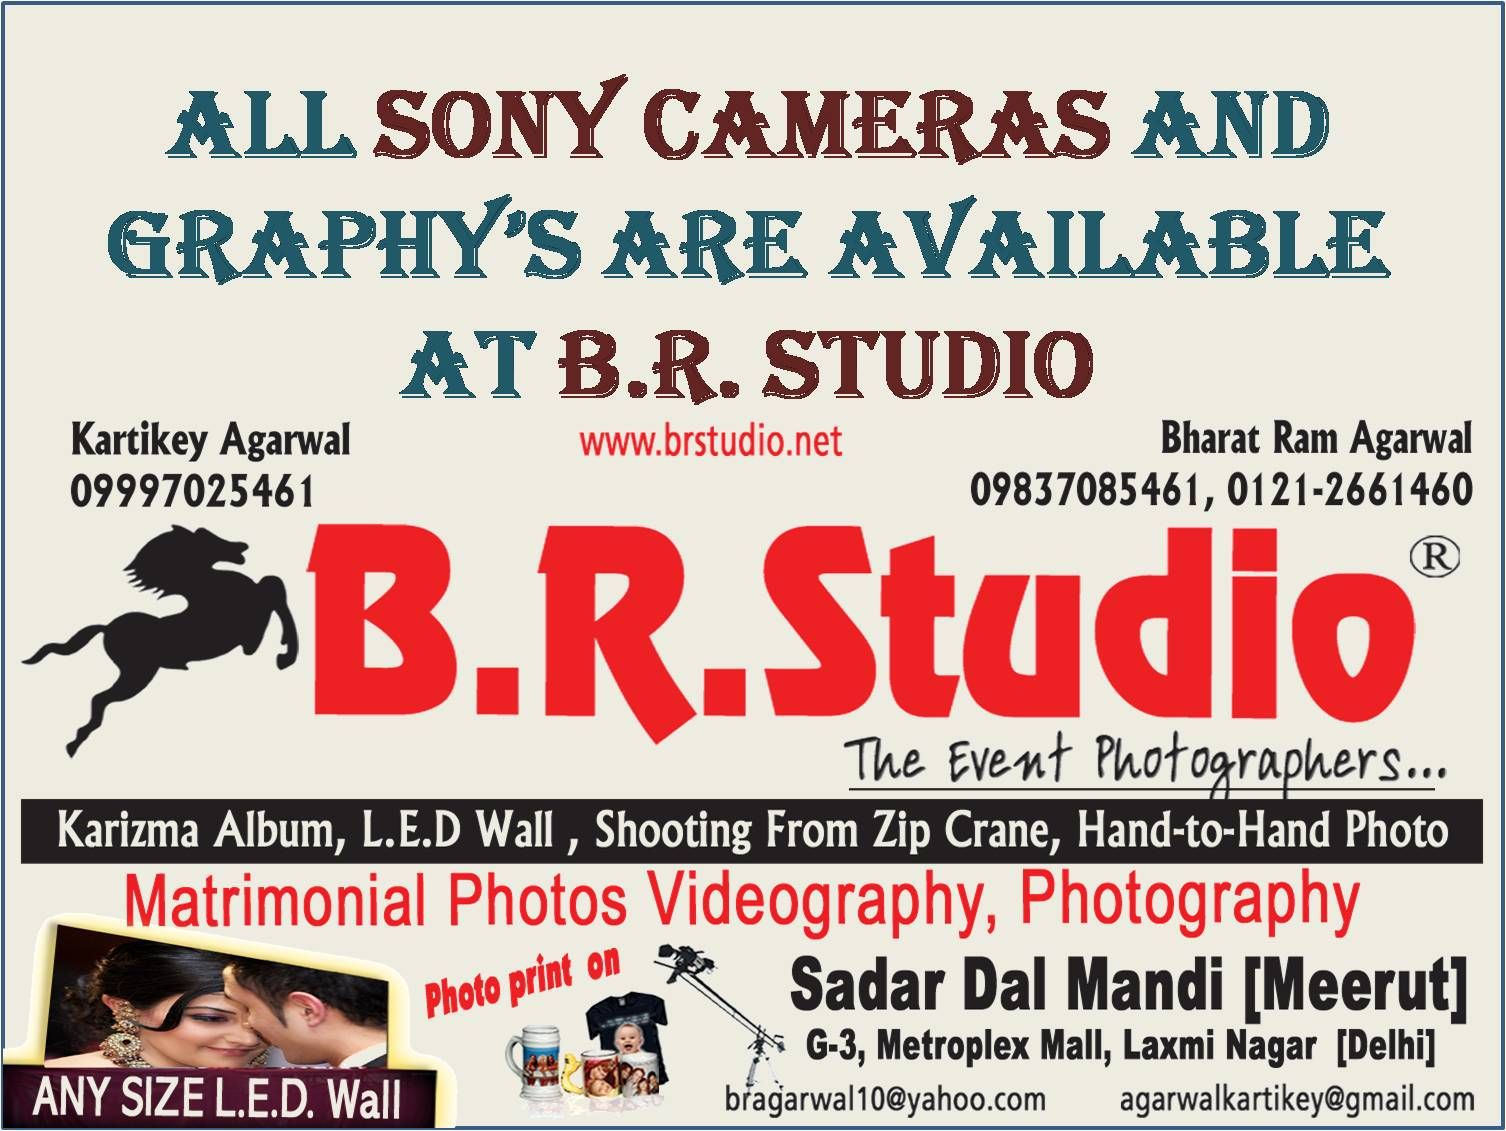 B R Studio Dealing In Cameras And Graphy S At Very Affordable